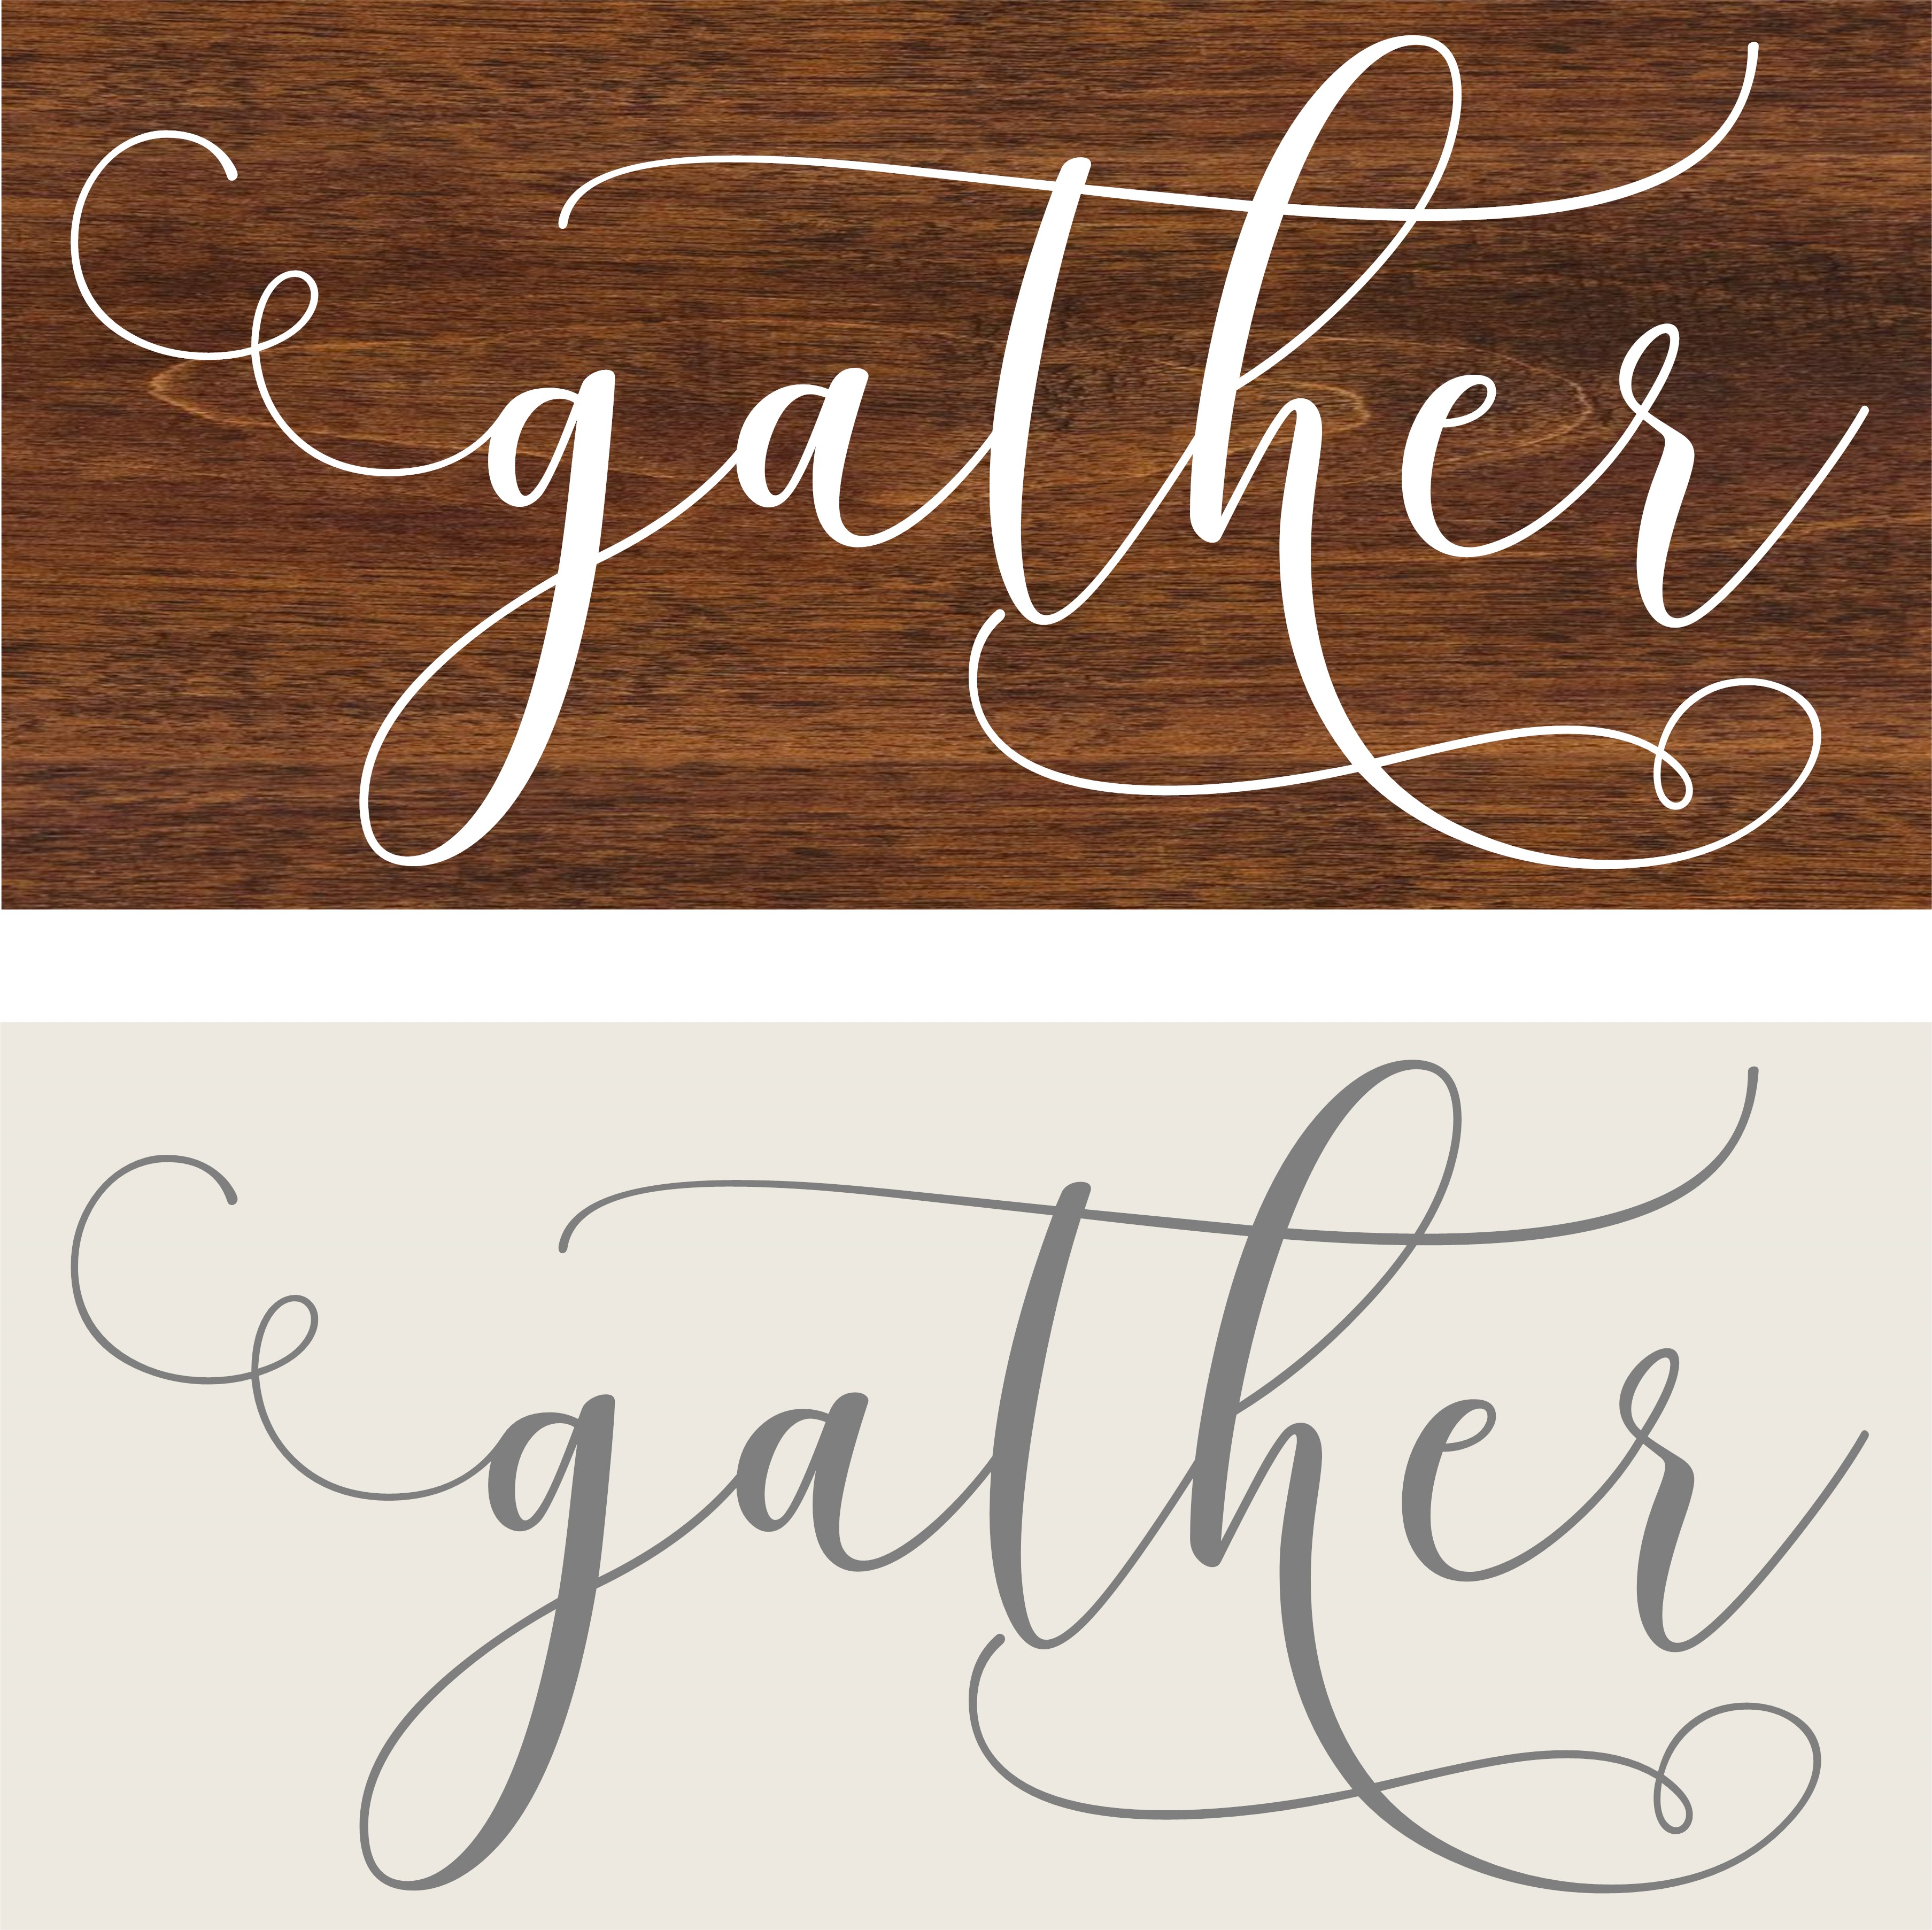 """Gather"" DIY Wood Sign Kit (12inx24in)"